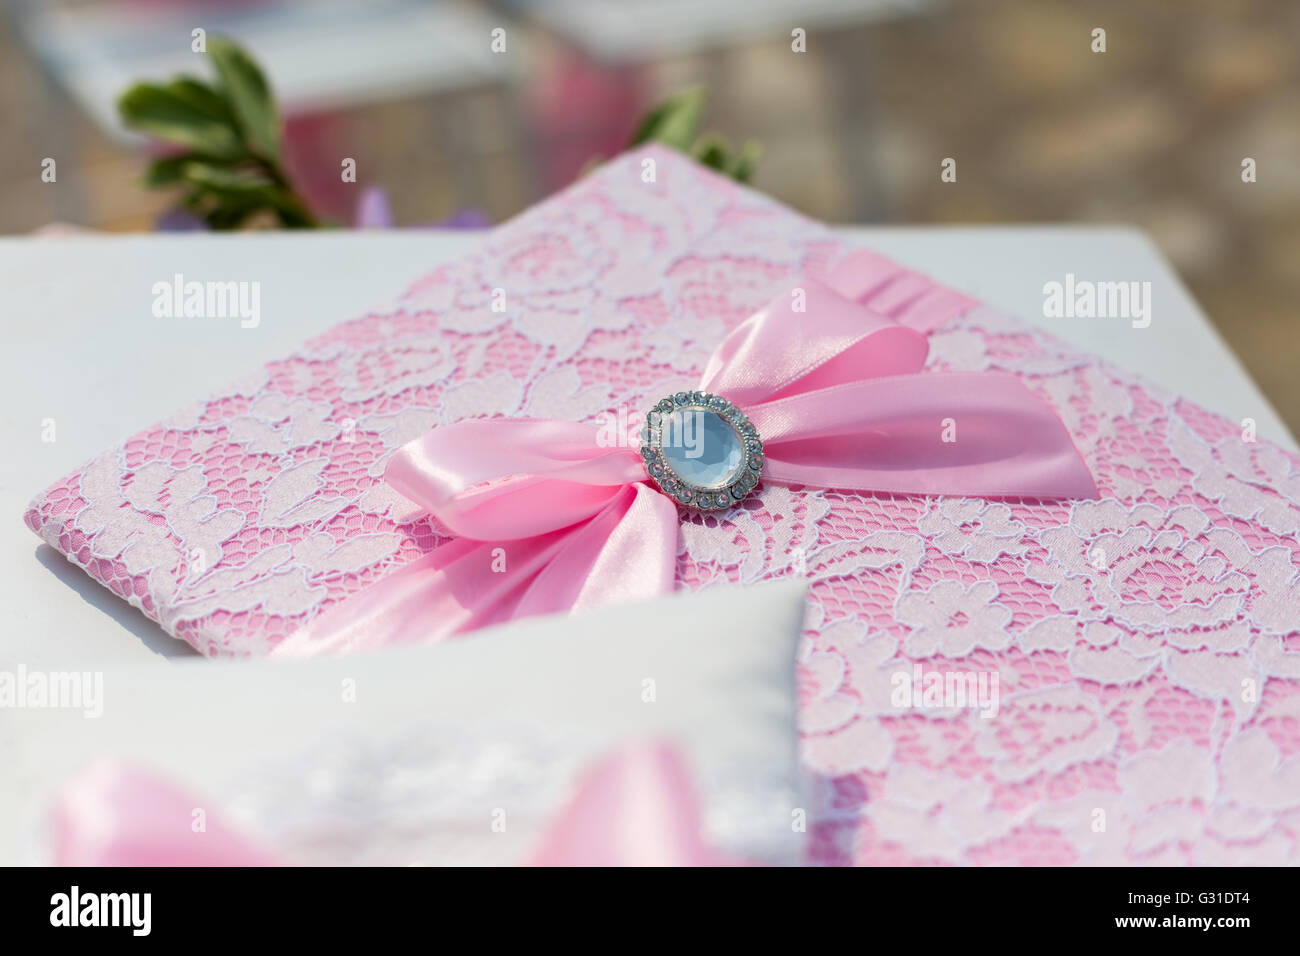 Wedding Ring Pillow Stock Photos & Wedding Ring Pillow Stock Images ...